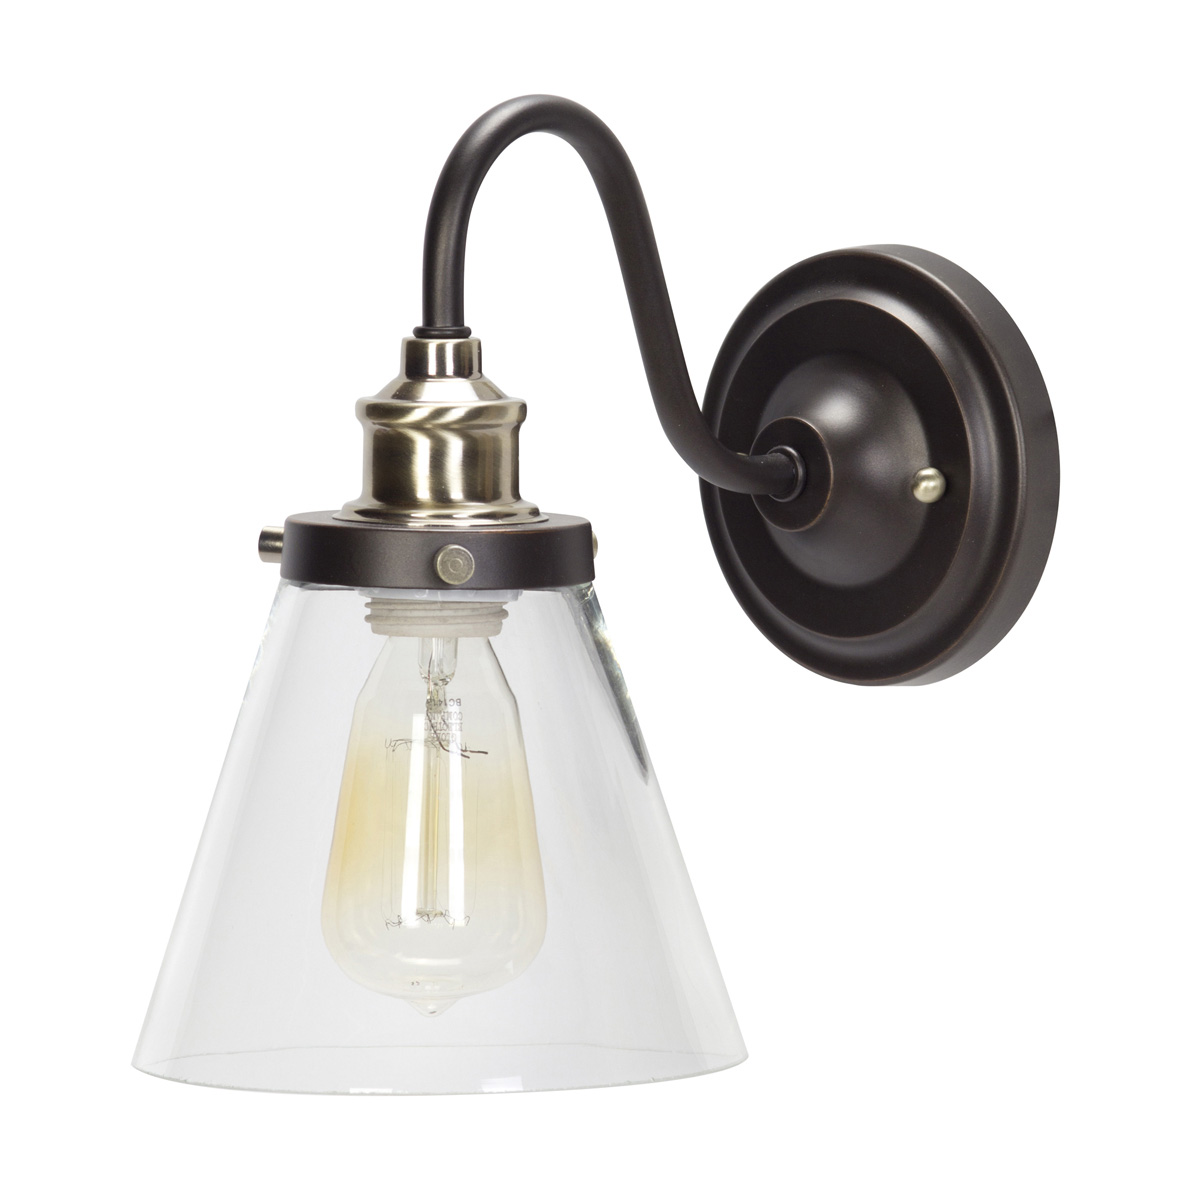 Globe Electric 60 Watt Jackson 1-Light Oil Rubbed Bronze and Antique Brass Wall Sconce... by Globe Electric